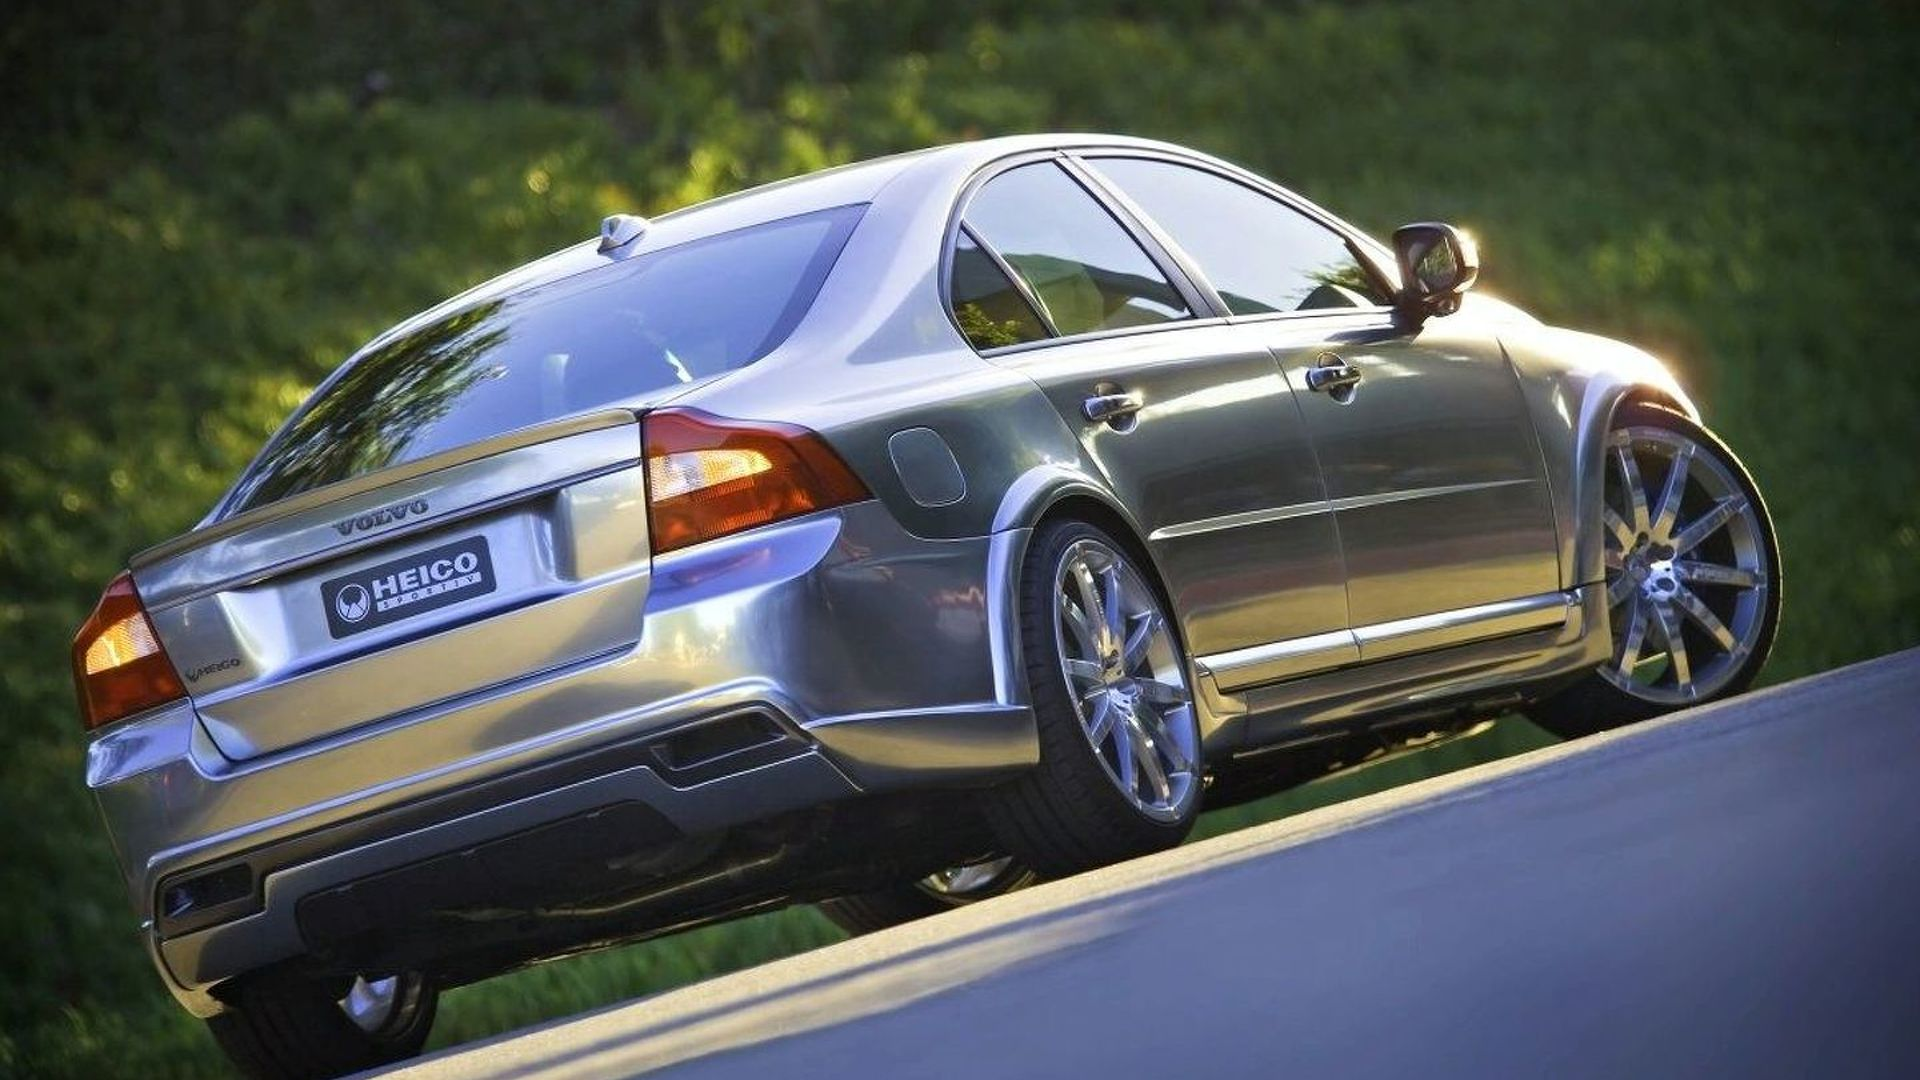 Volvo s80 t6 hpc by heico at sema publicscrutiny Image collections